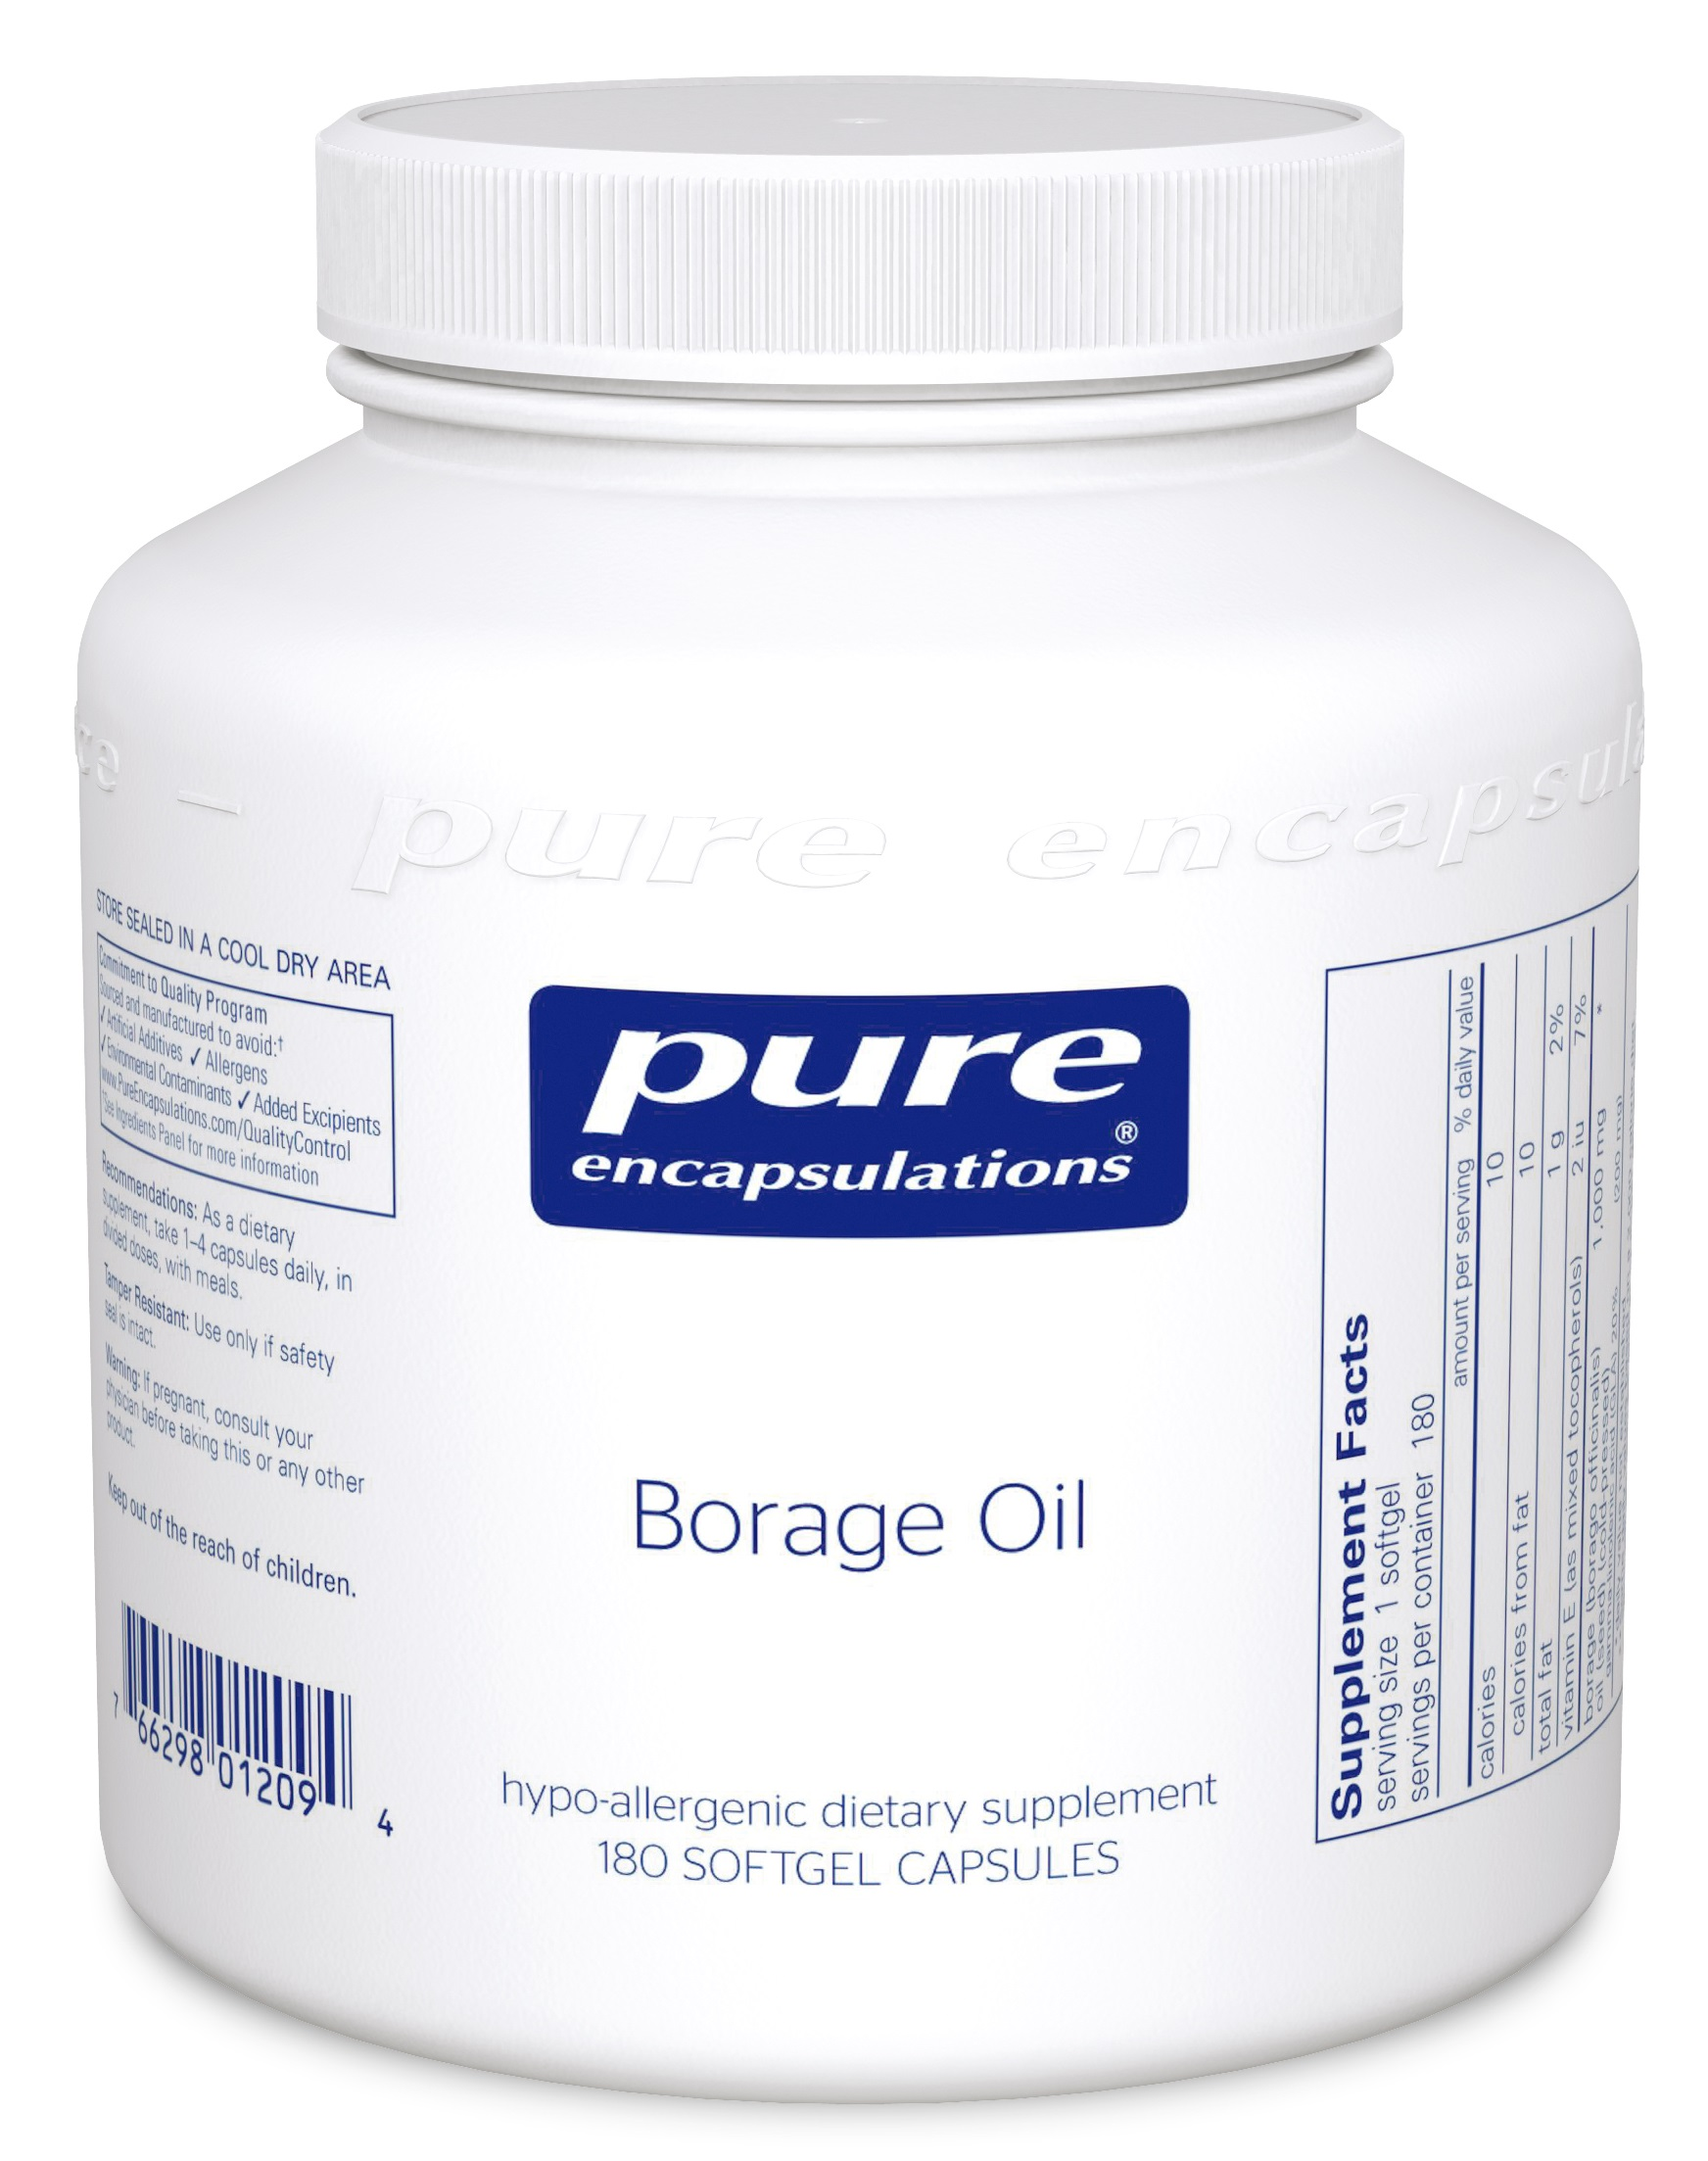 Pure Encapsulations Borage Oil